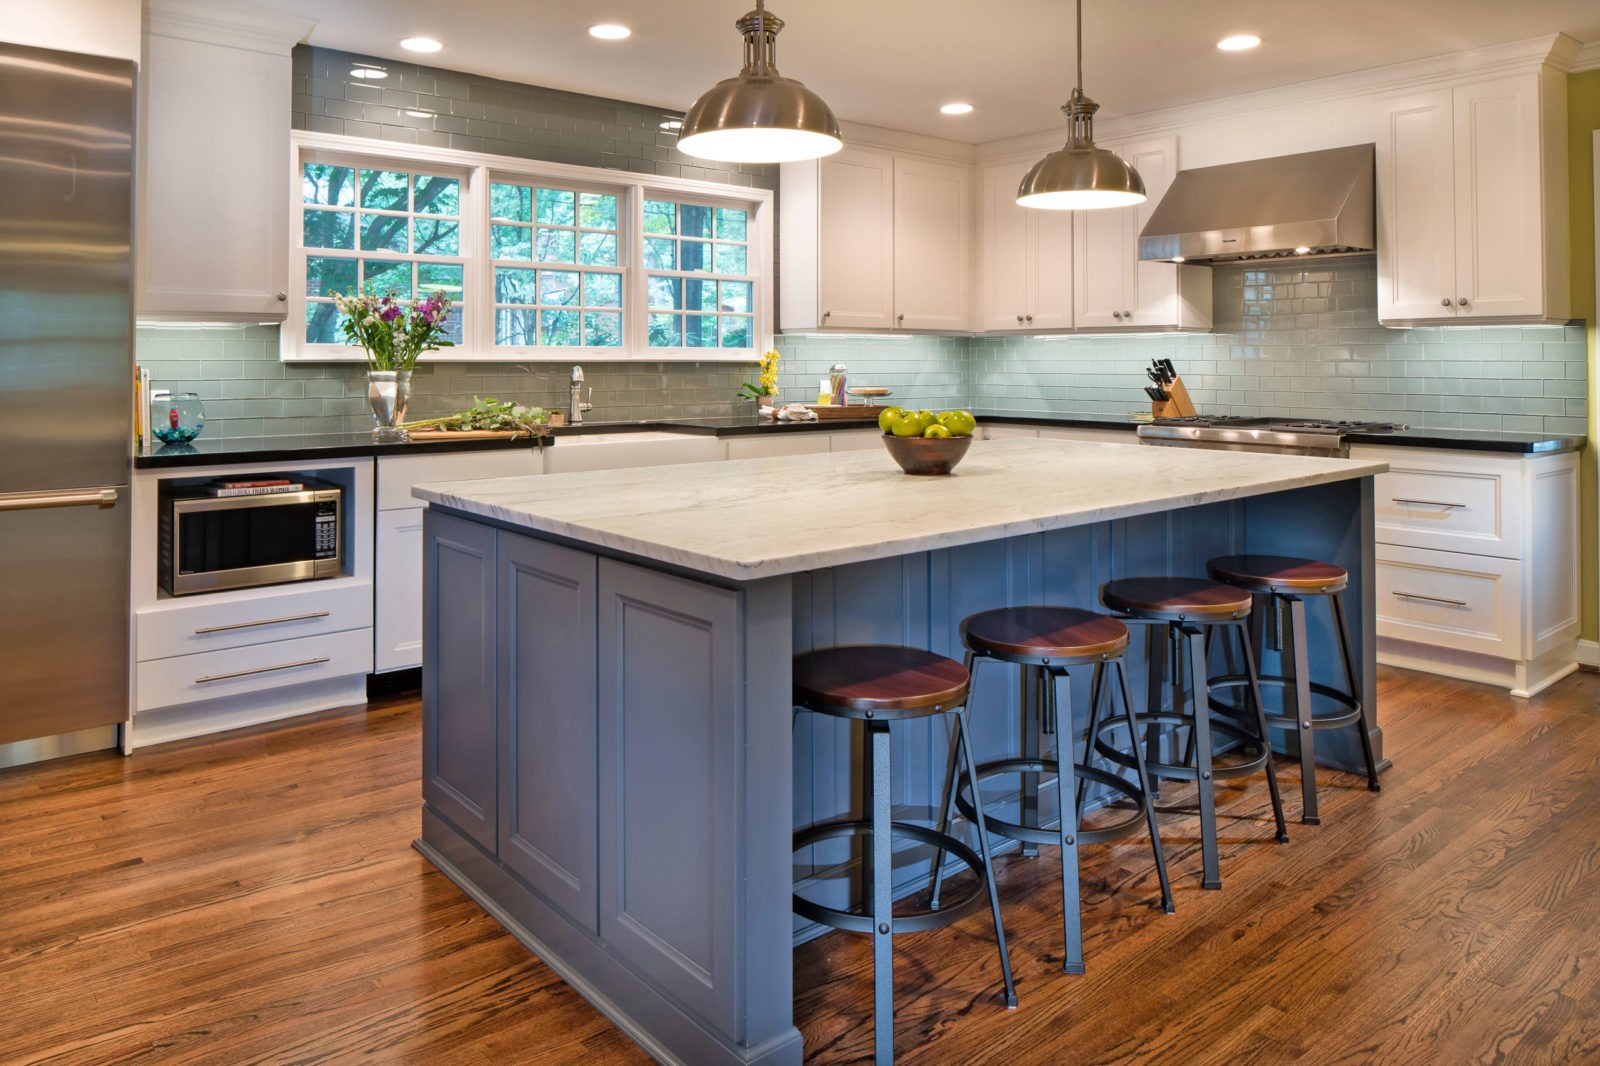 Honed Carrara marble on this dark gray island creates a focal point in this Charlotte, NC kitchen remodel